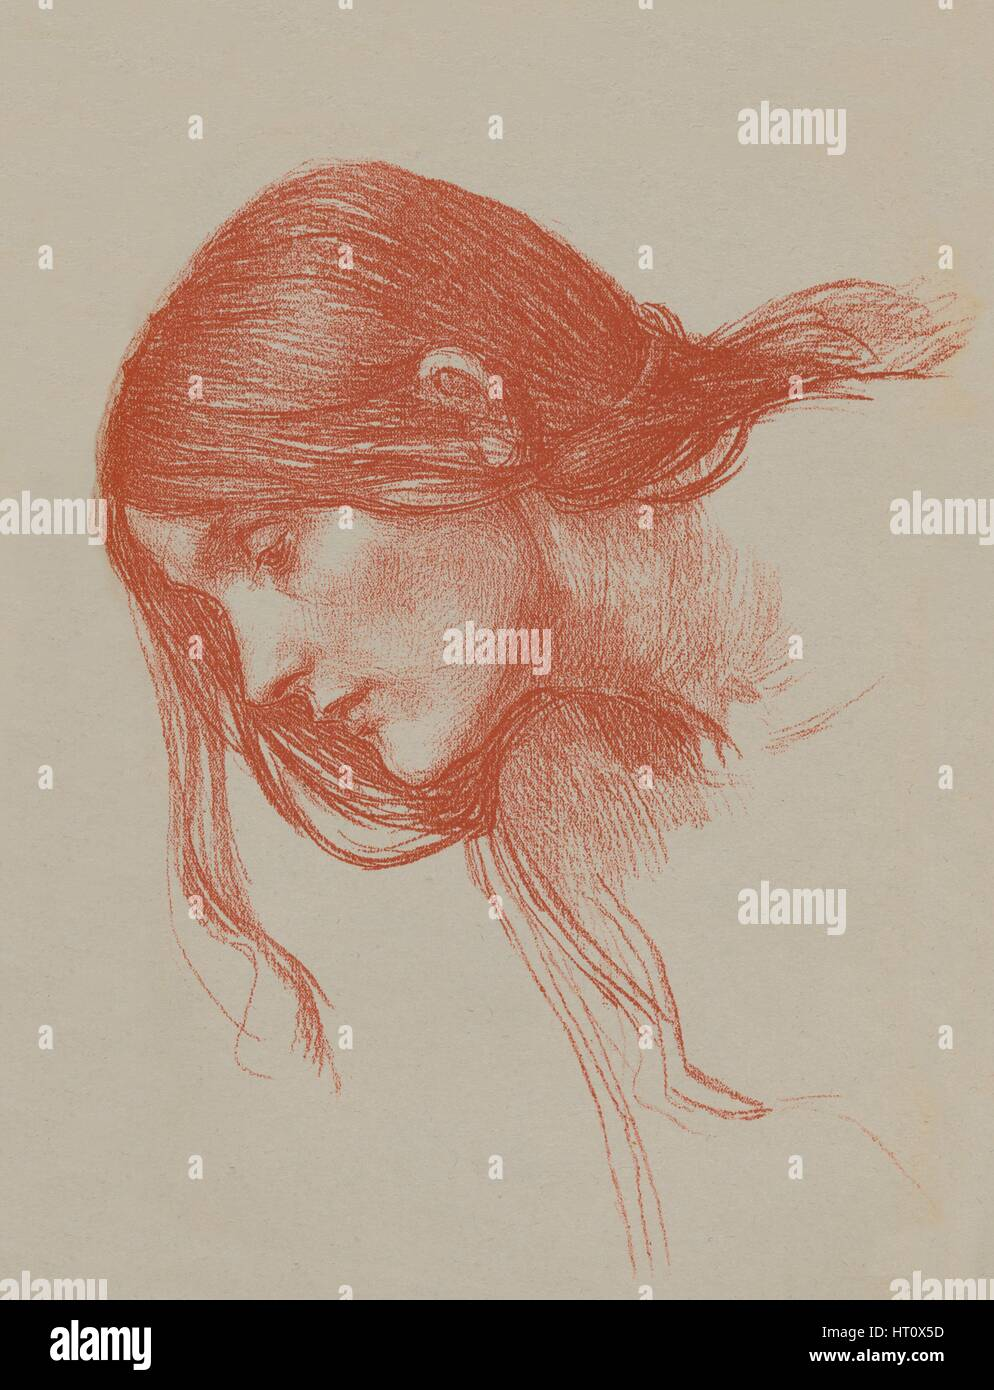 'Phyllis and Demophoon Study', c1897. Artist: John William Waterhouse. - Stock Image